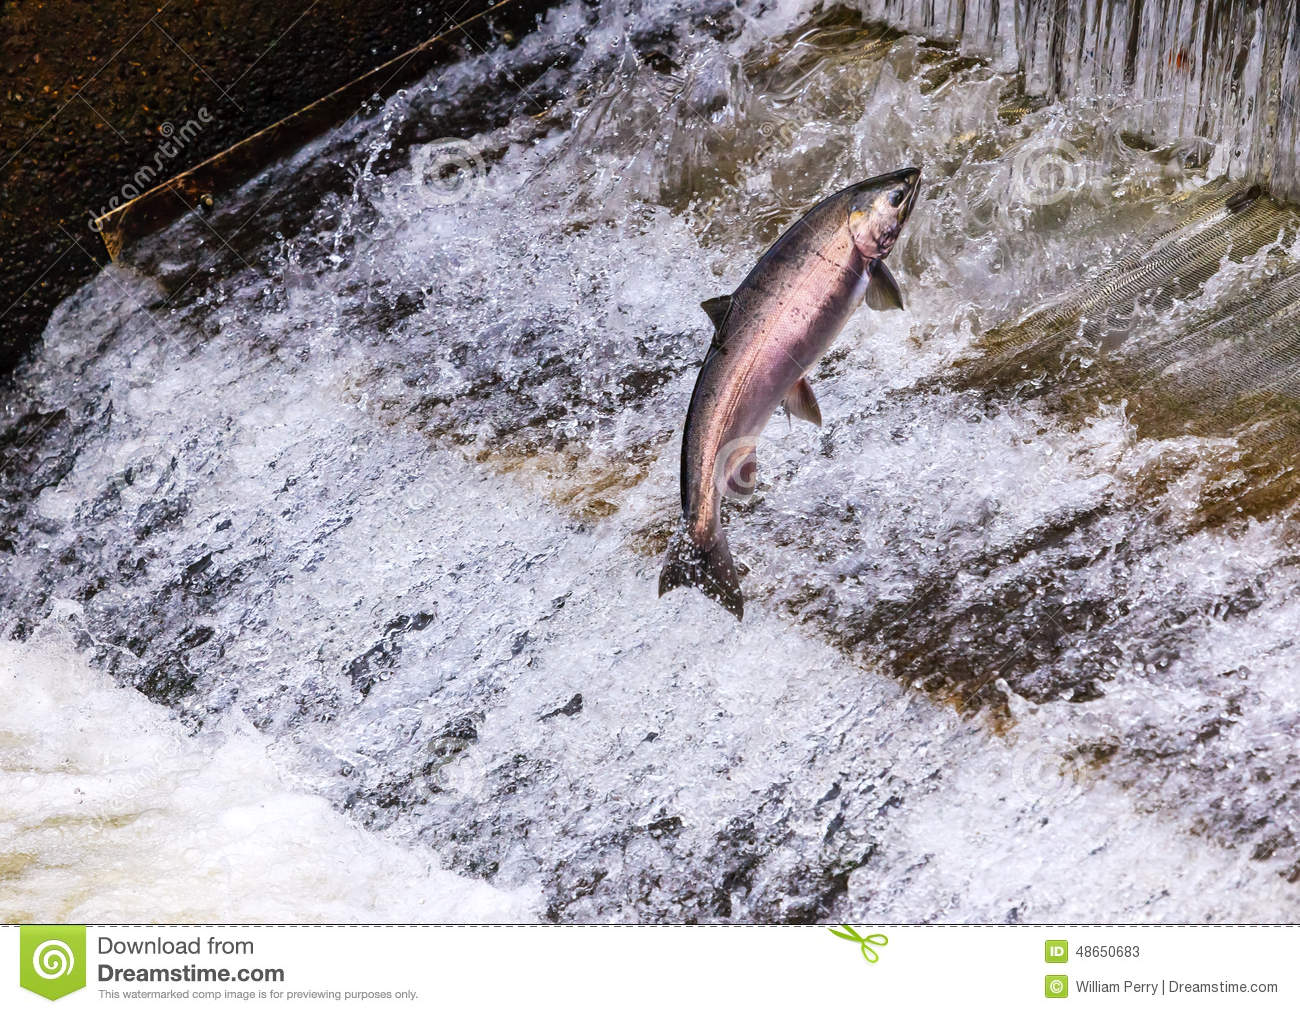 how to tell chinook from coho